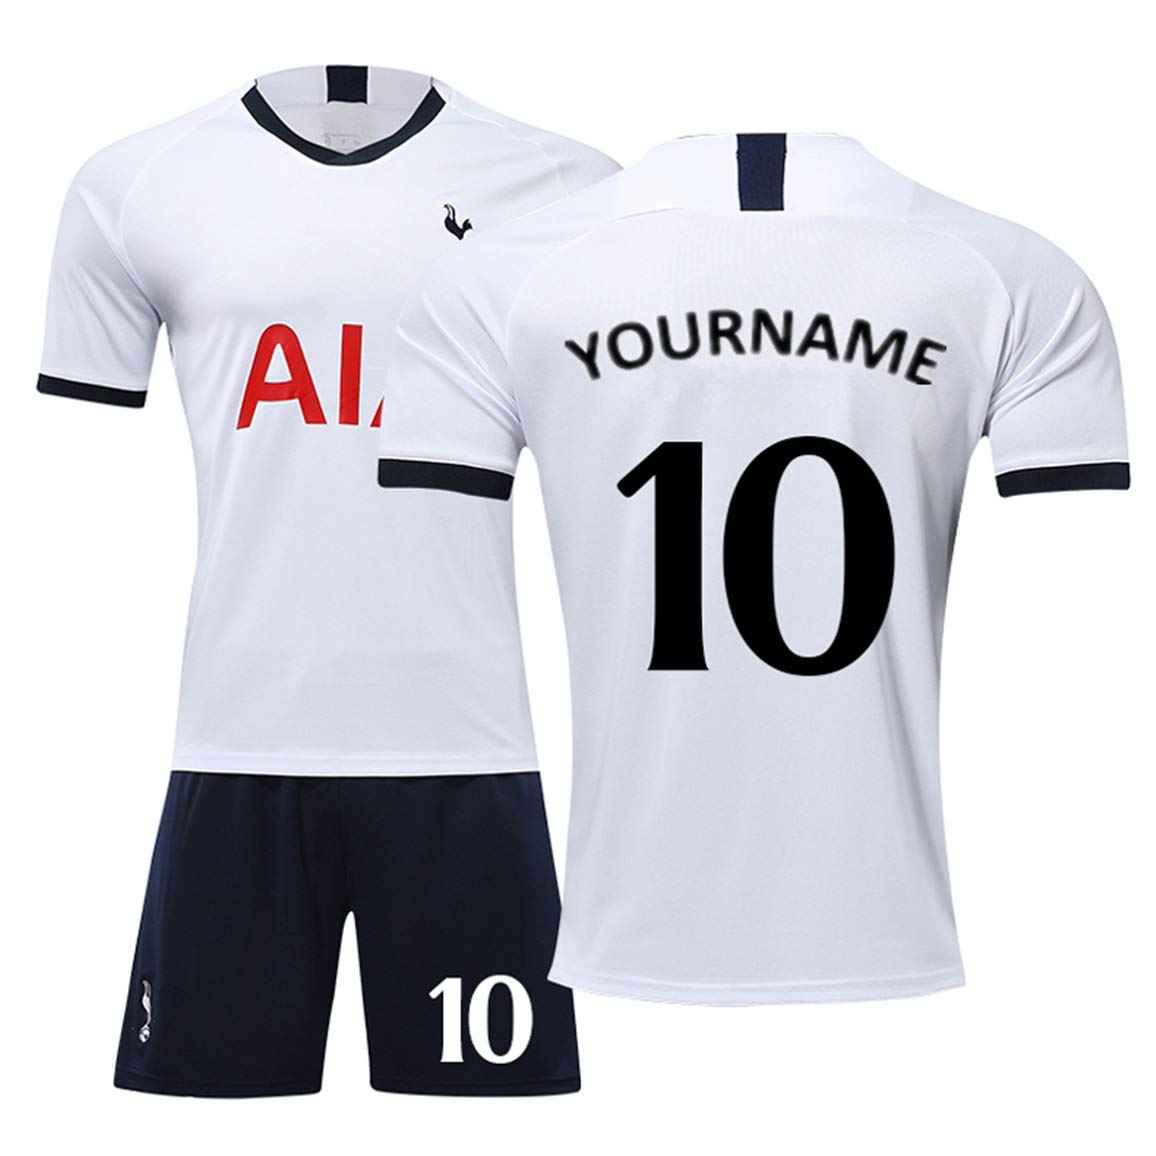 LULUT Custom Soccer Jersey Breathable Sweat-Absorbent Professional Football Uniform Can Be Printed Your Name and Number